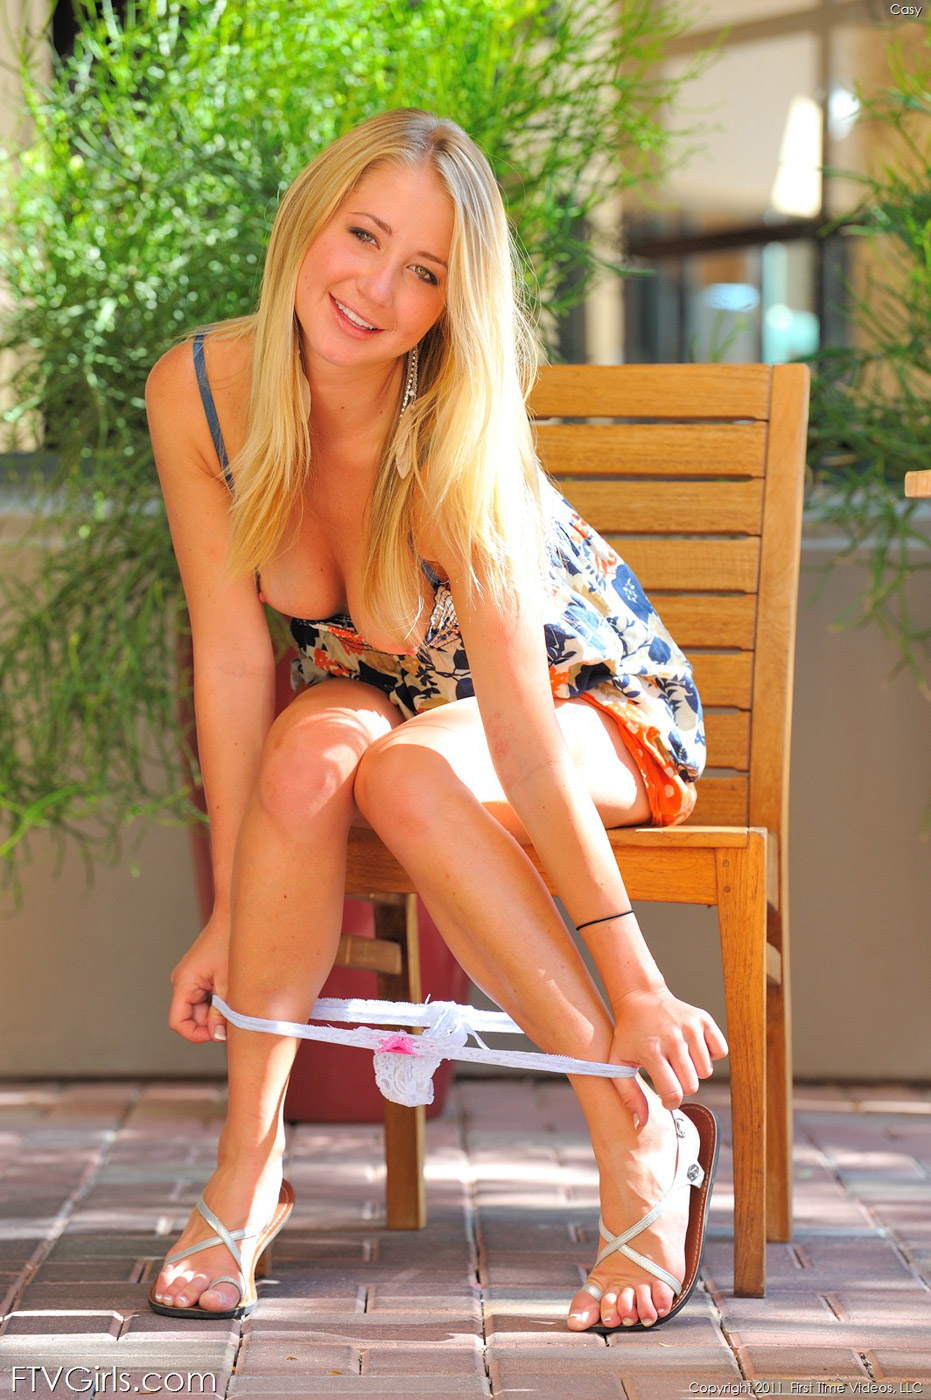 Have thought upskirt pictures women in thongs or no panties at all